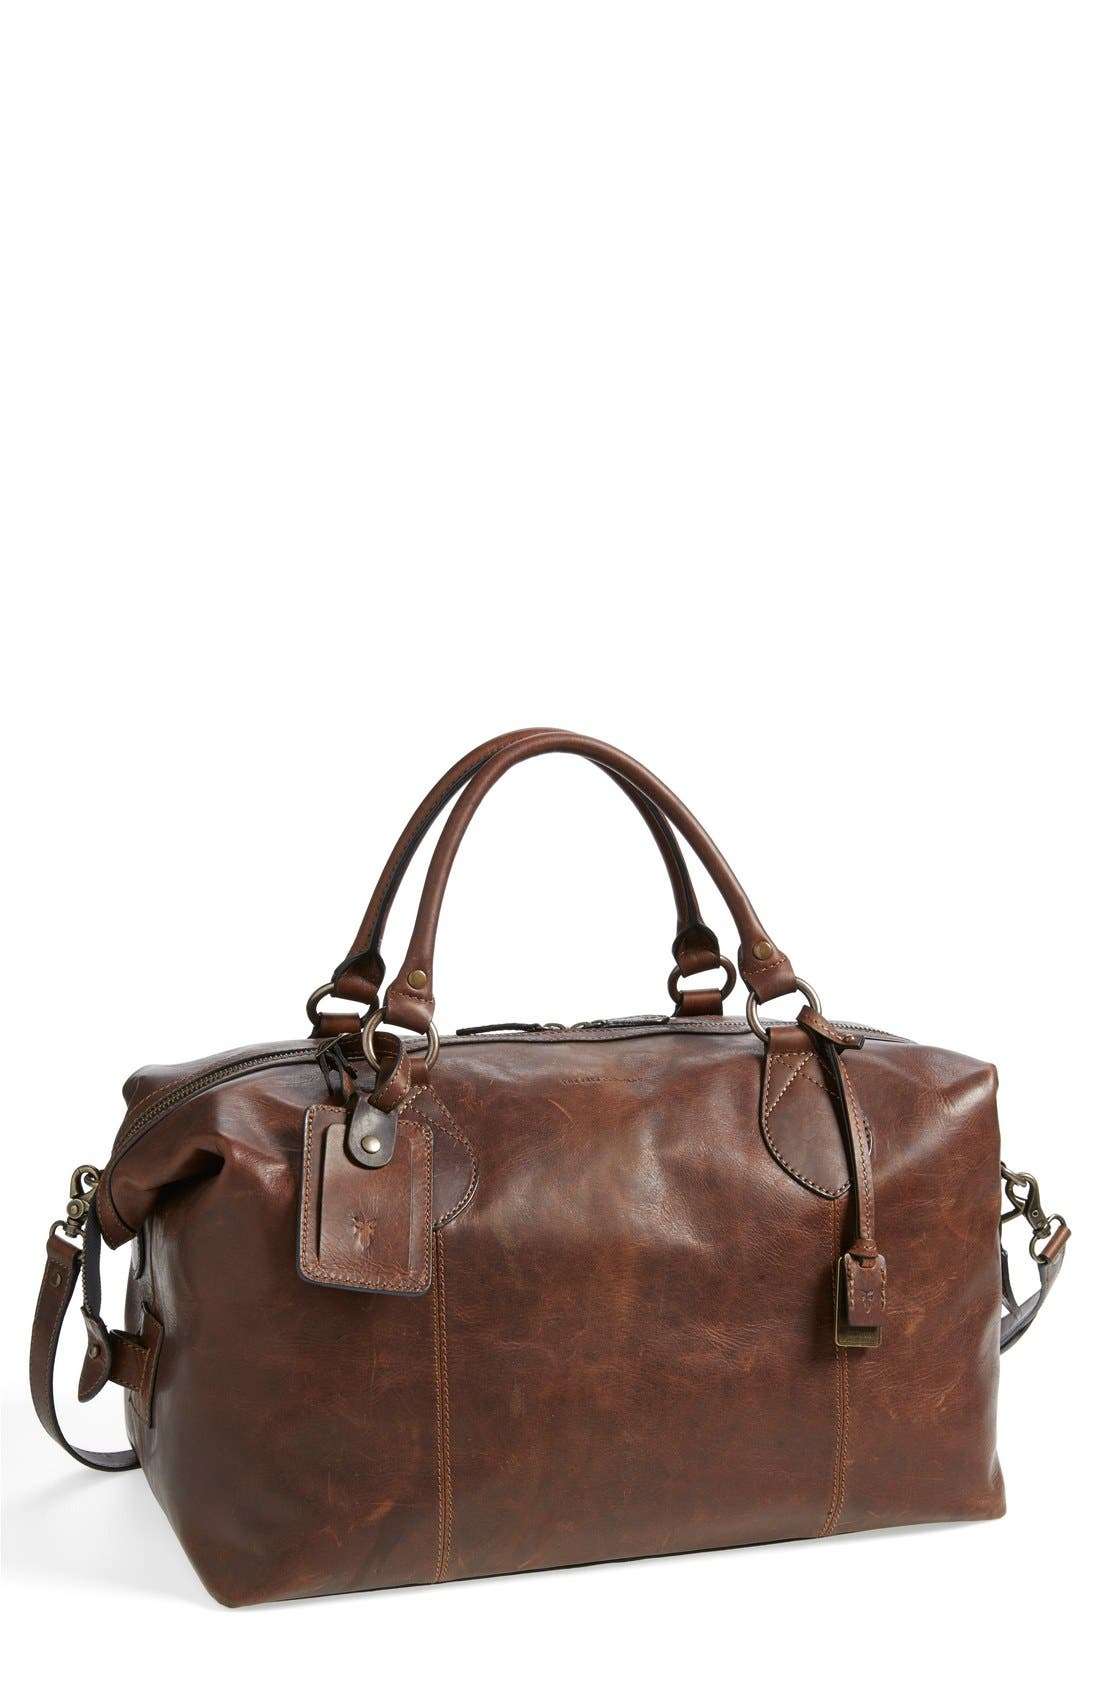 'Logan' Leather Overnight Bag,                             Main thumbnail 1, color,                             DARK BROWN